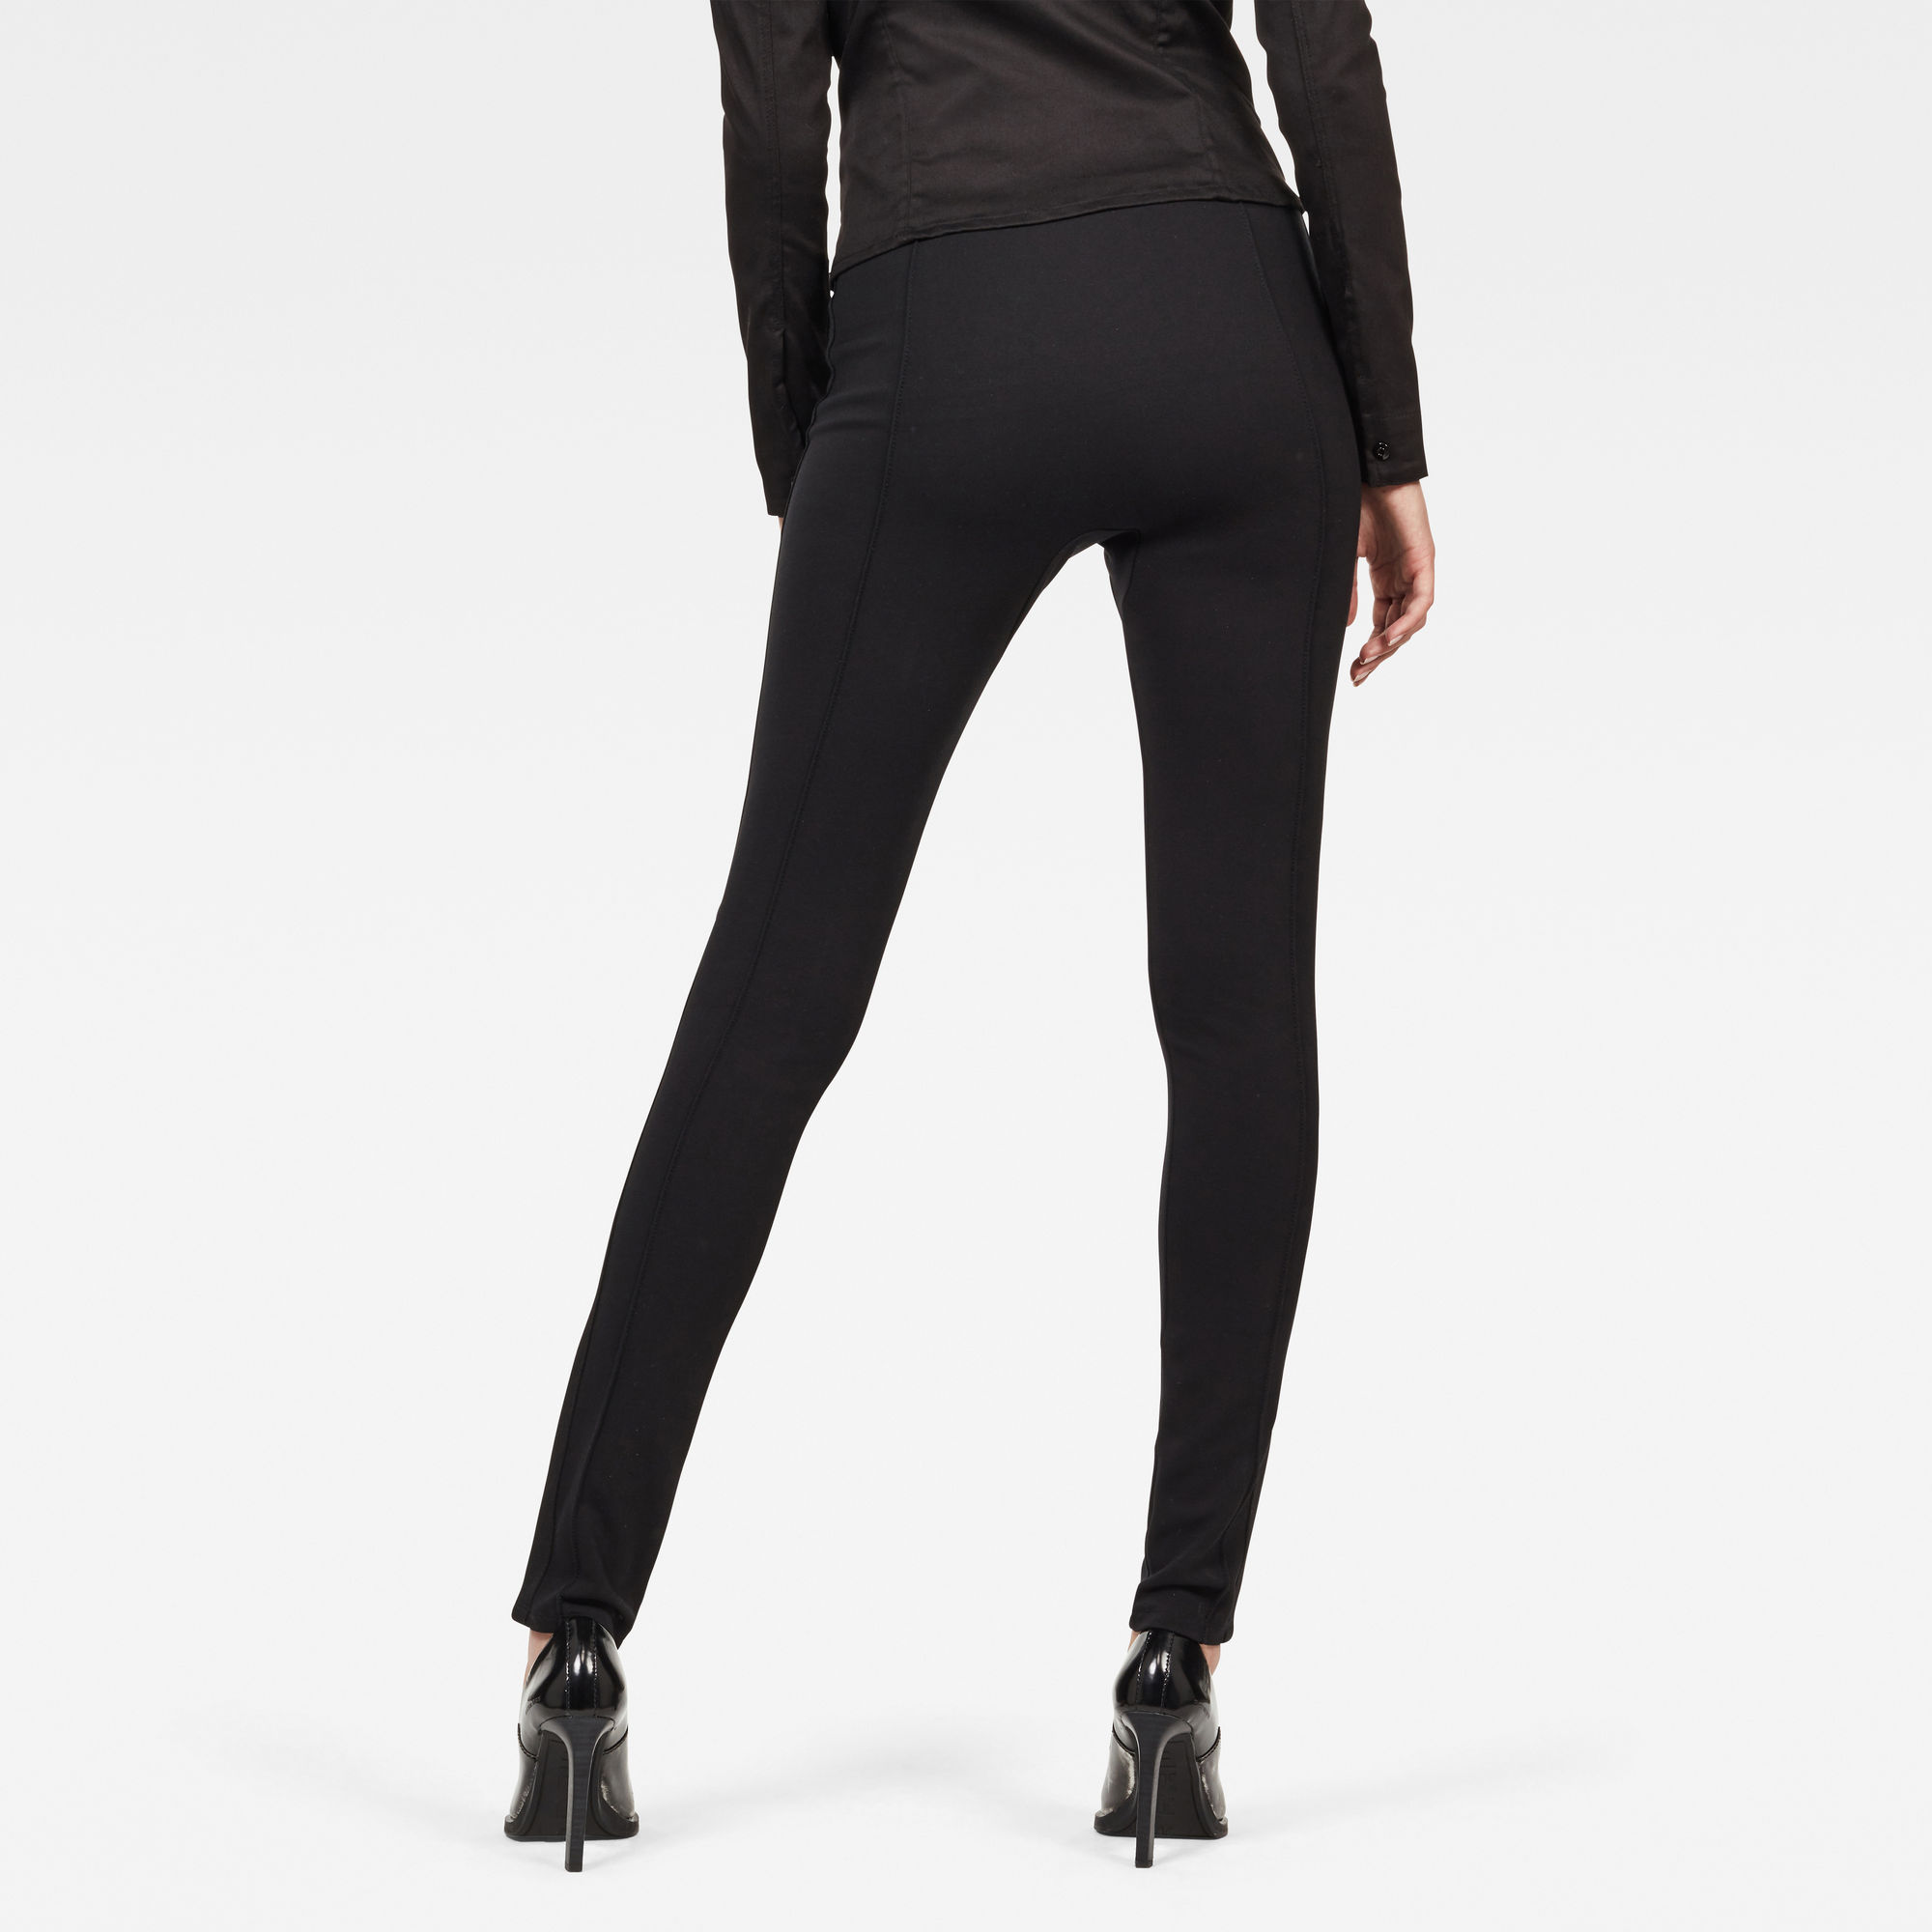 G-Star RAW Nostelle High Legging